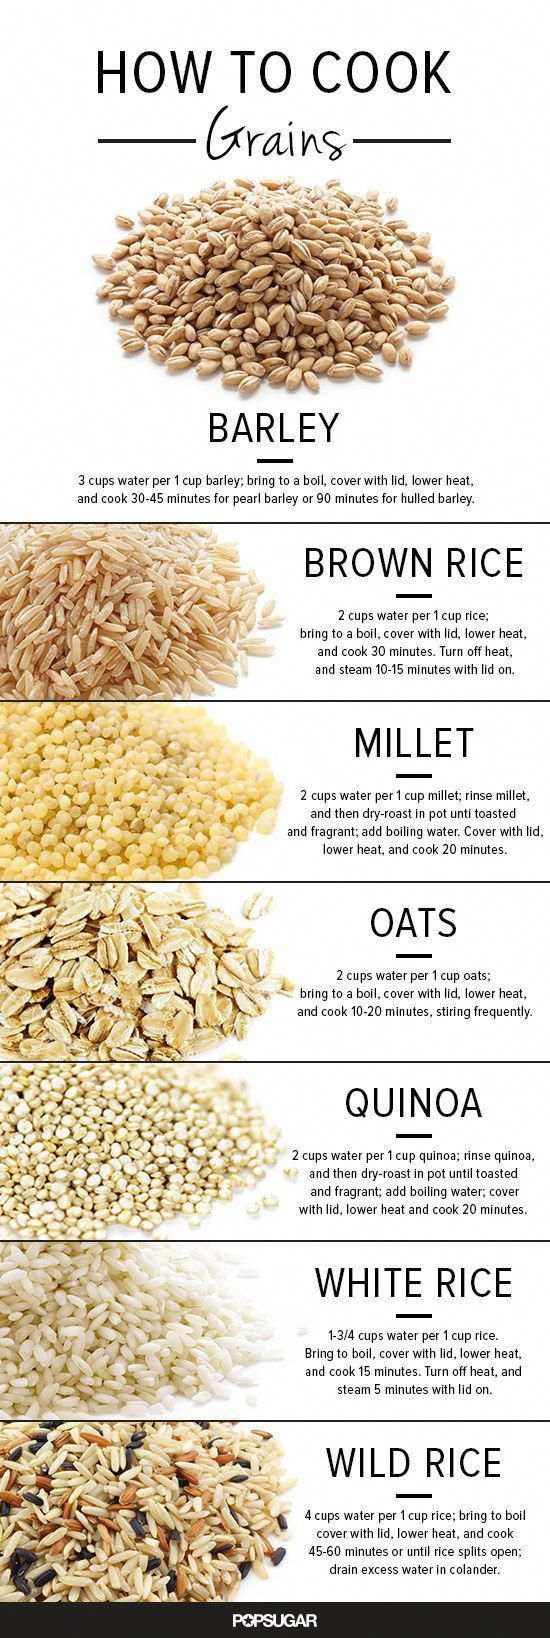 For getting perfect grains every time:   17 Useful Cheat Sheets Everyone Should Keep In Their Kitchen #cookingtips